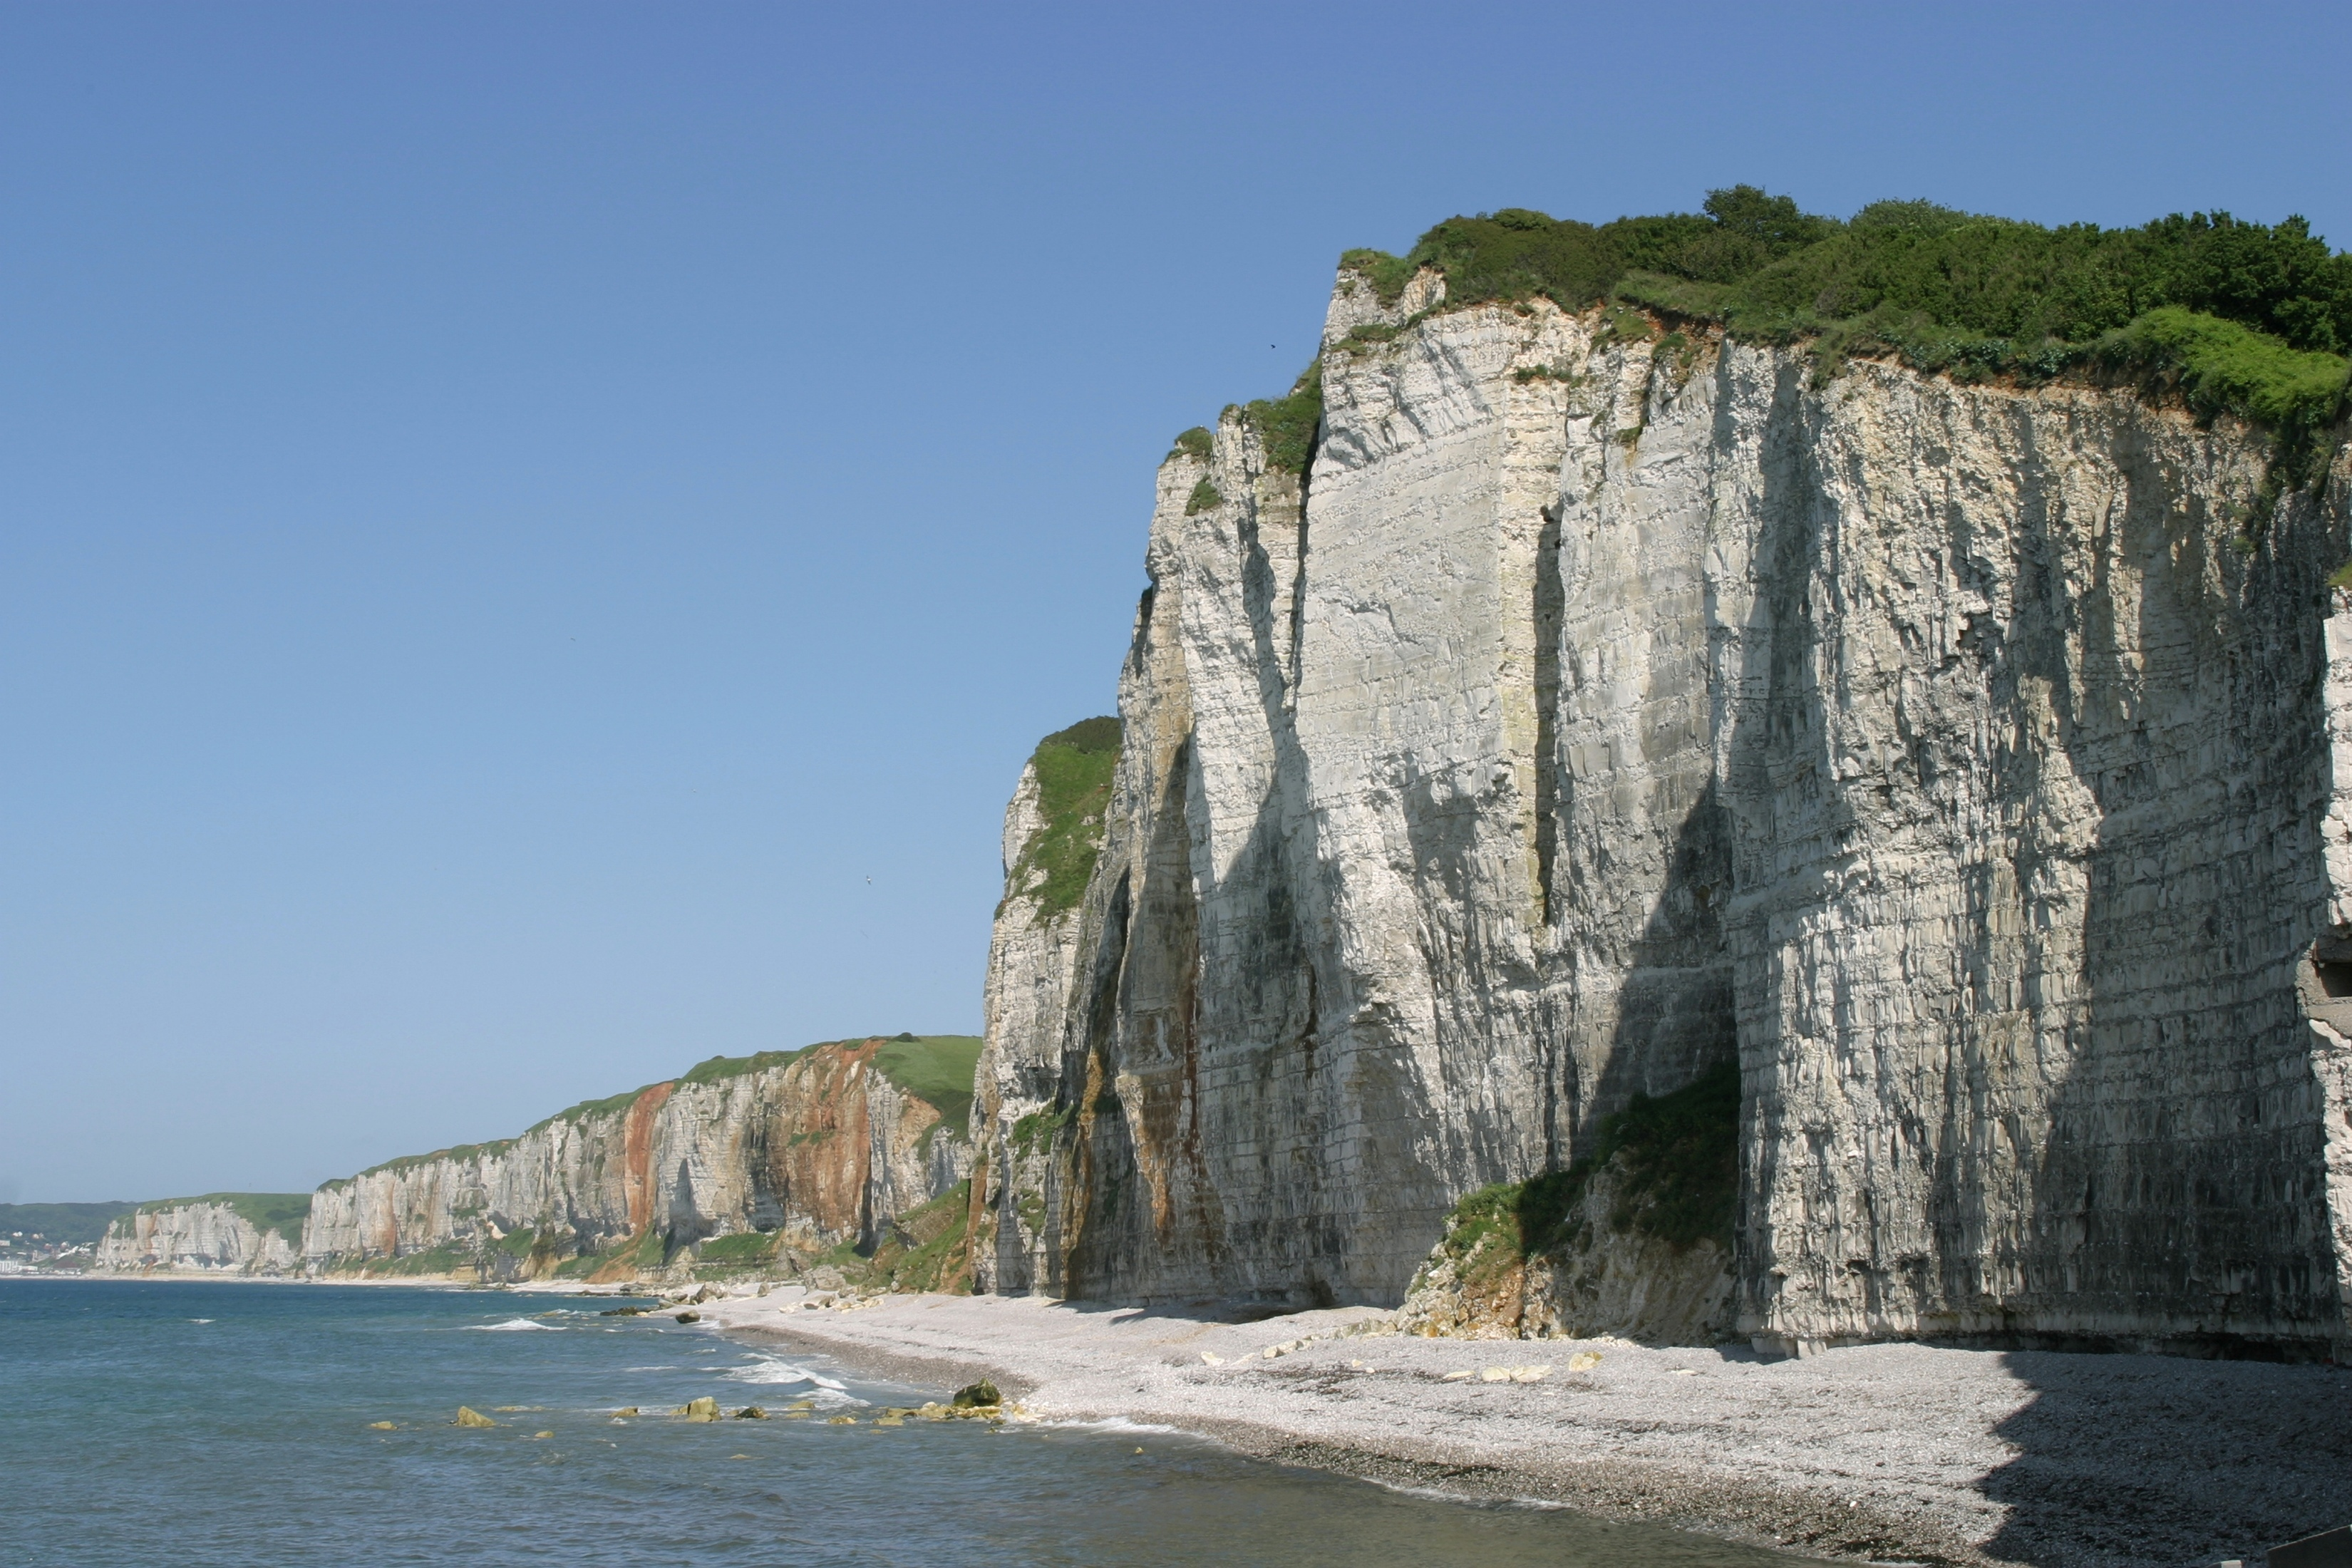 Cliff wallpapers, Earth, HQ Cliff pictures | 4K Wallpapers ...